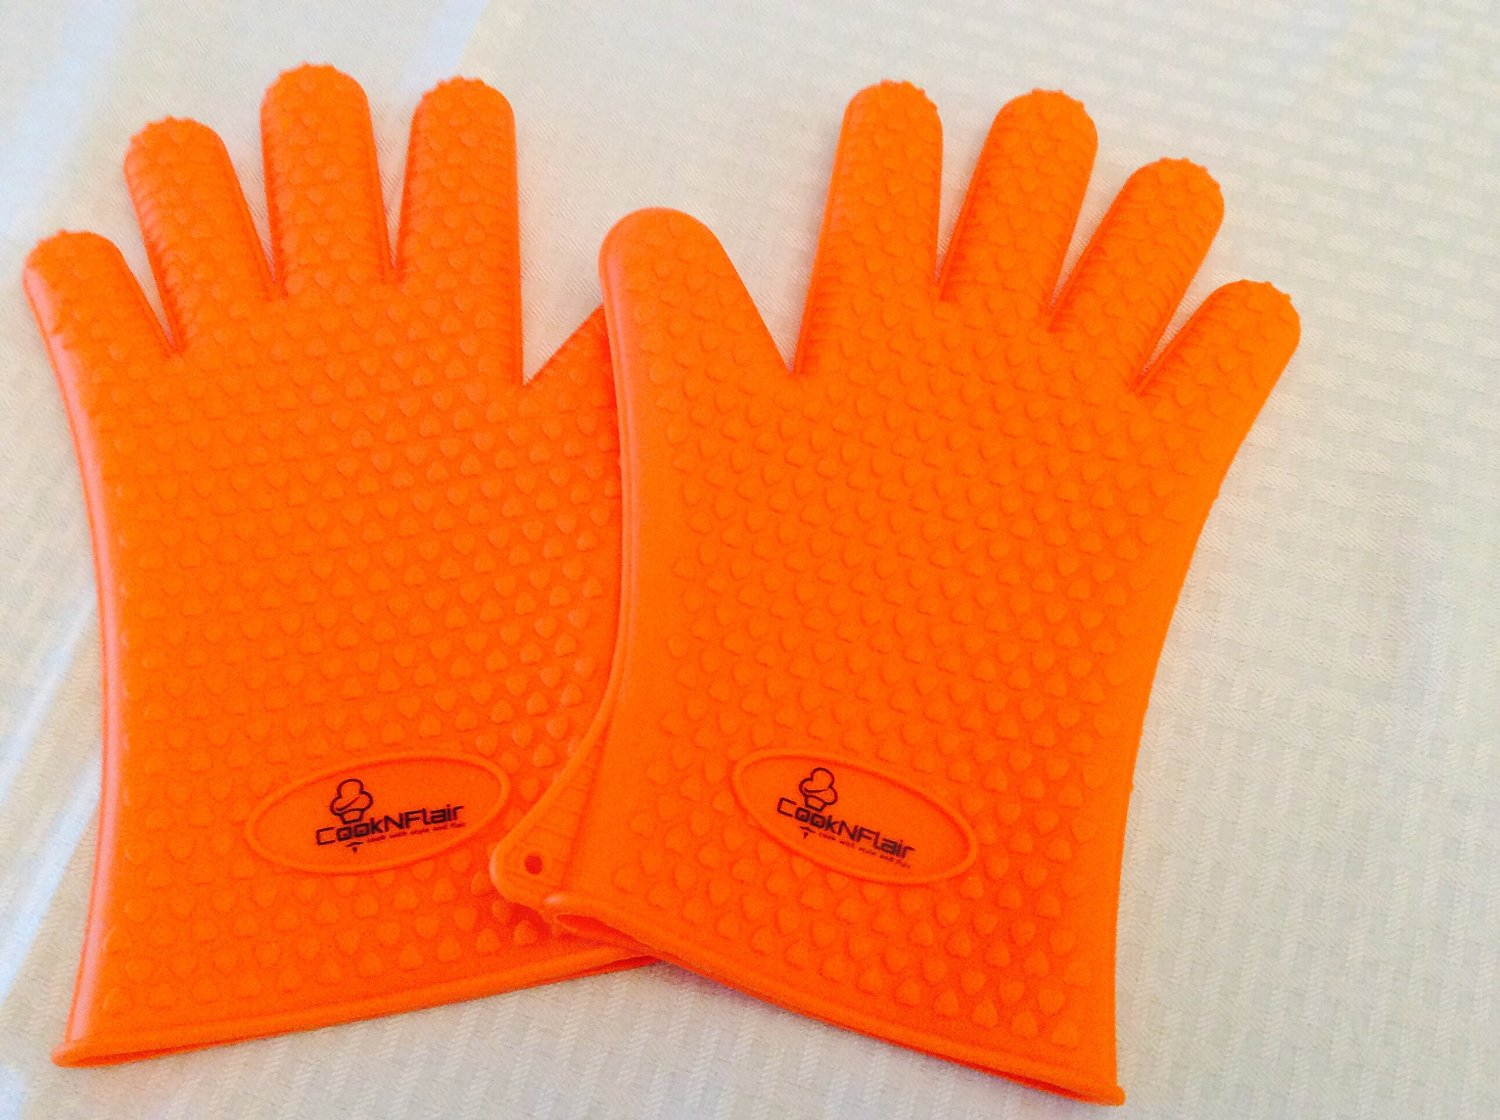 Silicone BBQ Gloves by CookNFlair, Ultimate Burn Protection, Anti-Slip, 5 Finger Grip Design for Safe Cooking & BBQ Grilling -One Size Fits All & Multipurpose,+190g Thickness Resist Heat up to 425°F -FDA Approved Food Safe, Eco-Friendly Construction (Orange)